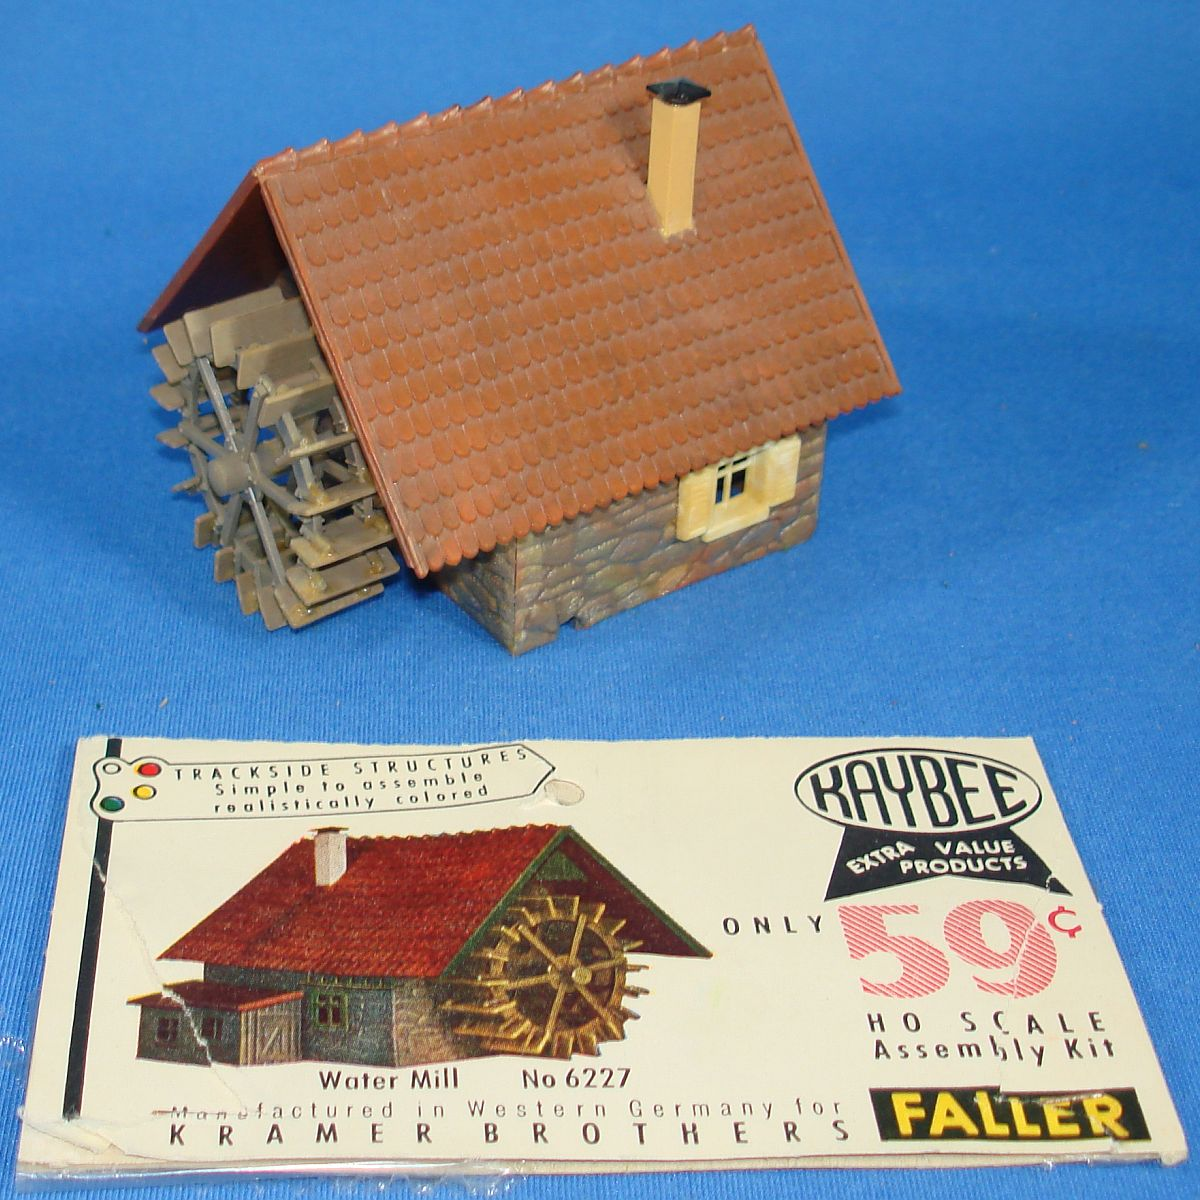 Faller Kaybee Kramer Brothers Trackside Structures HO Scale Assembly Kit Water Mill 6227